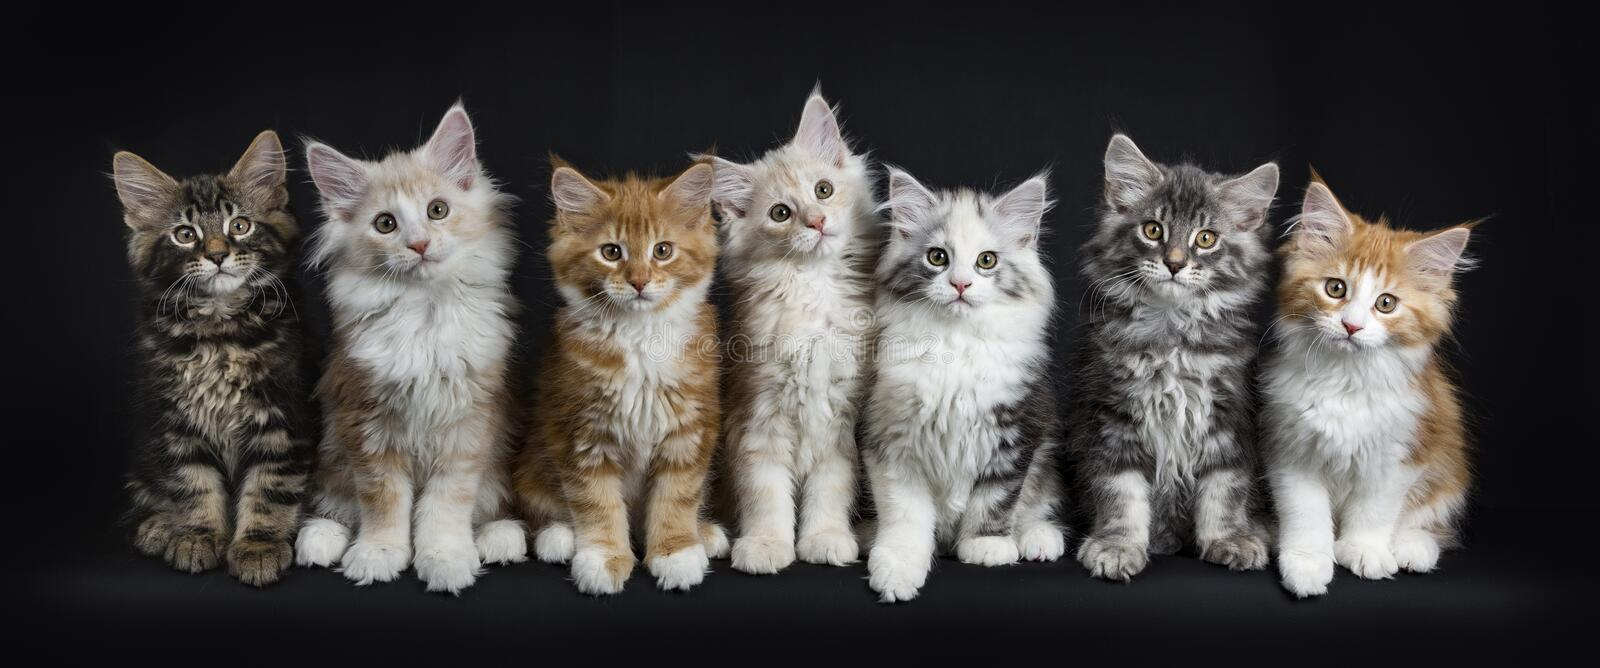 Row of seven maine coon cats on black. Row of seven maine coon cats / kittens looking straight in lens isolated on black background stock images